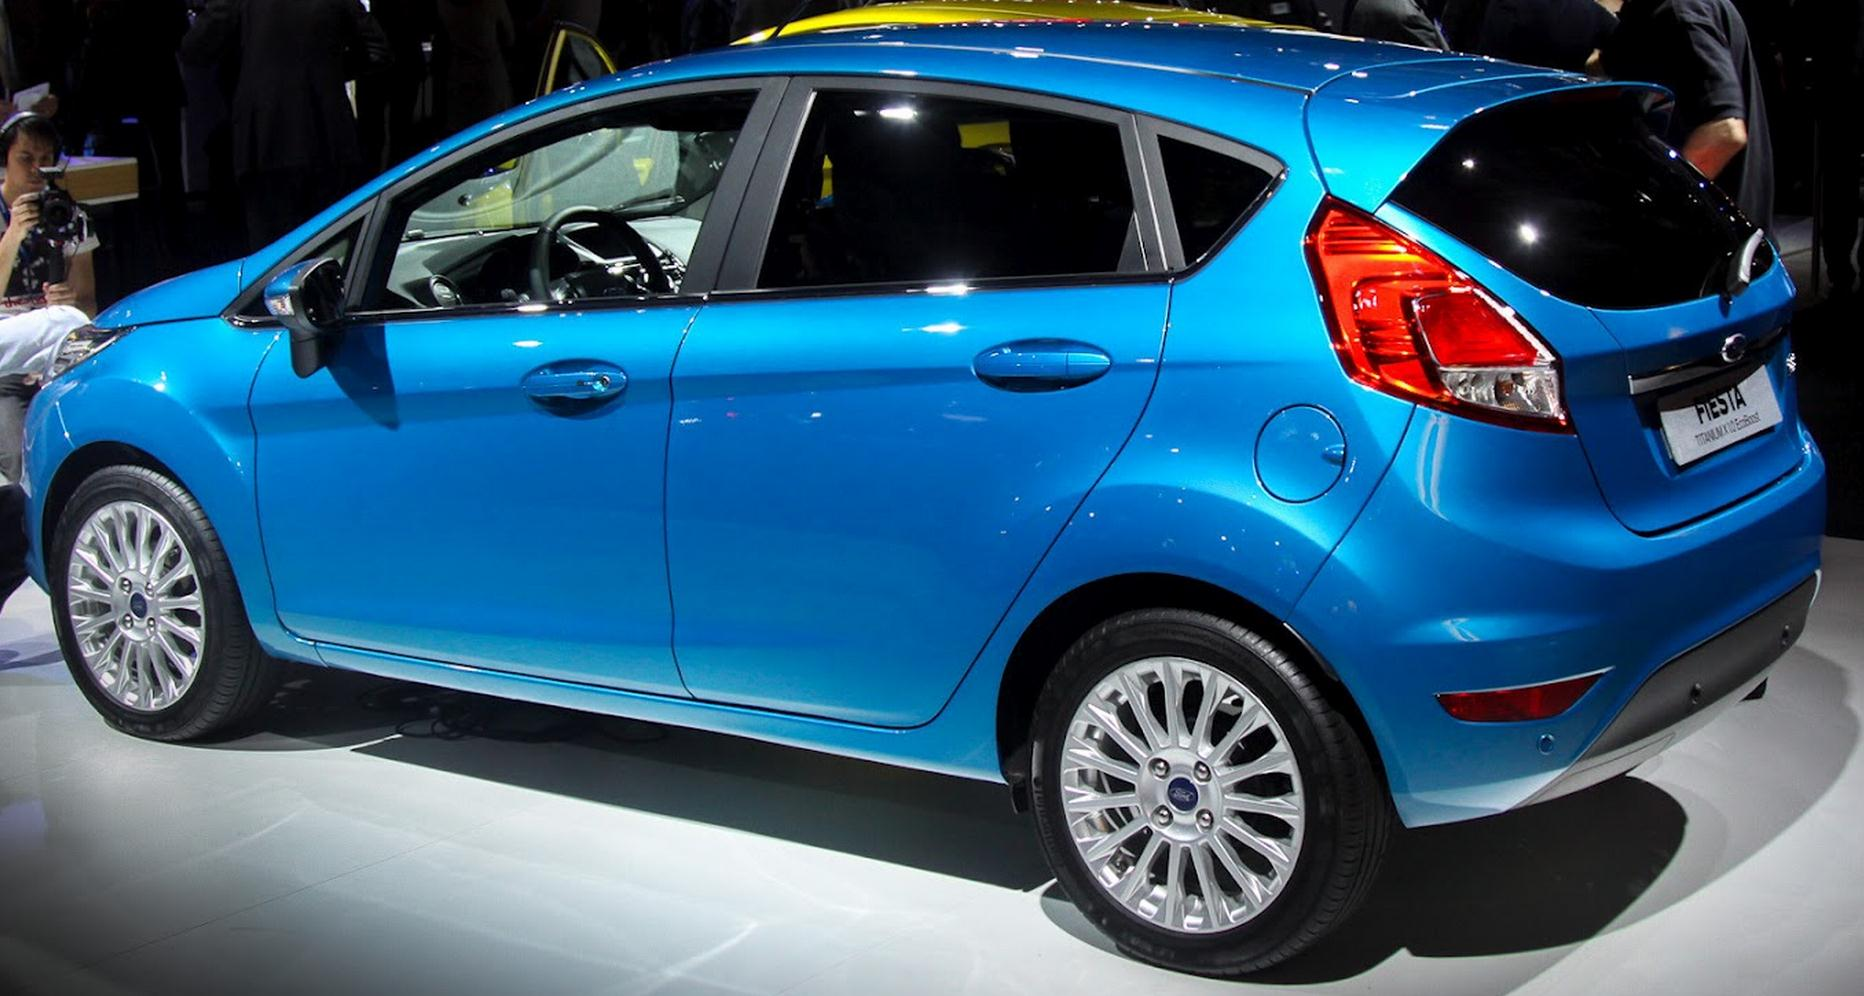 Ford Fiesta 1.0 2012 photo - 1